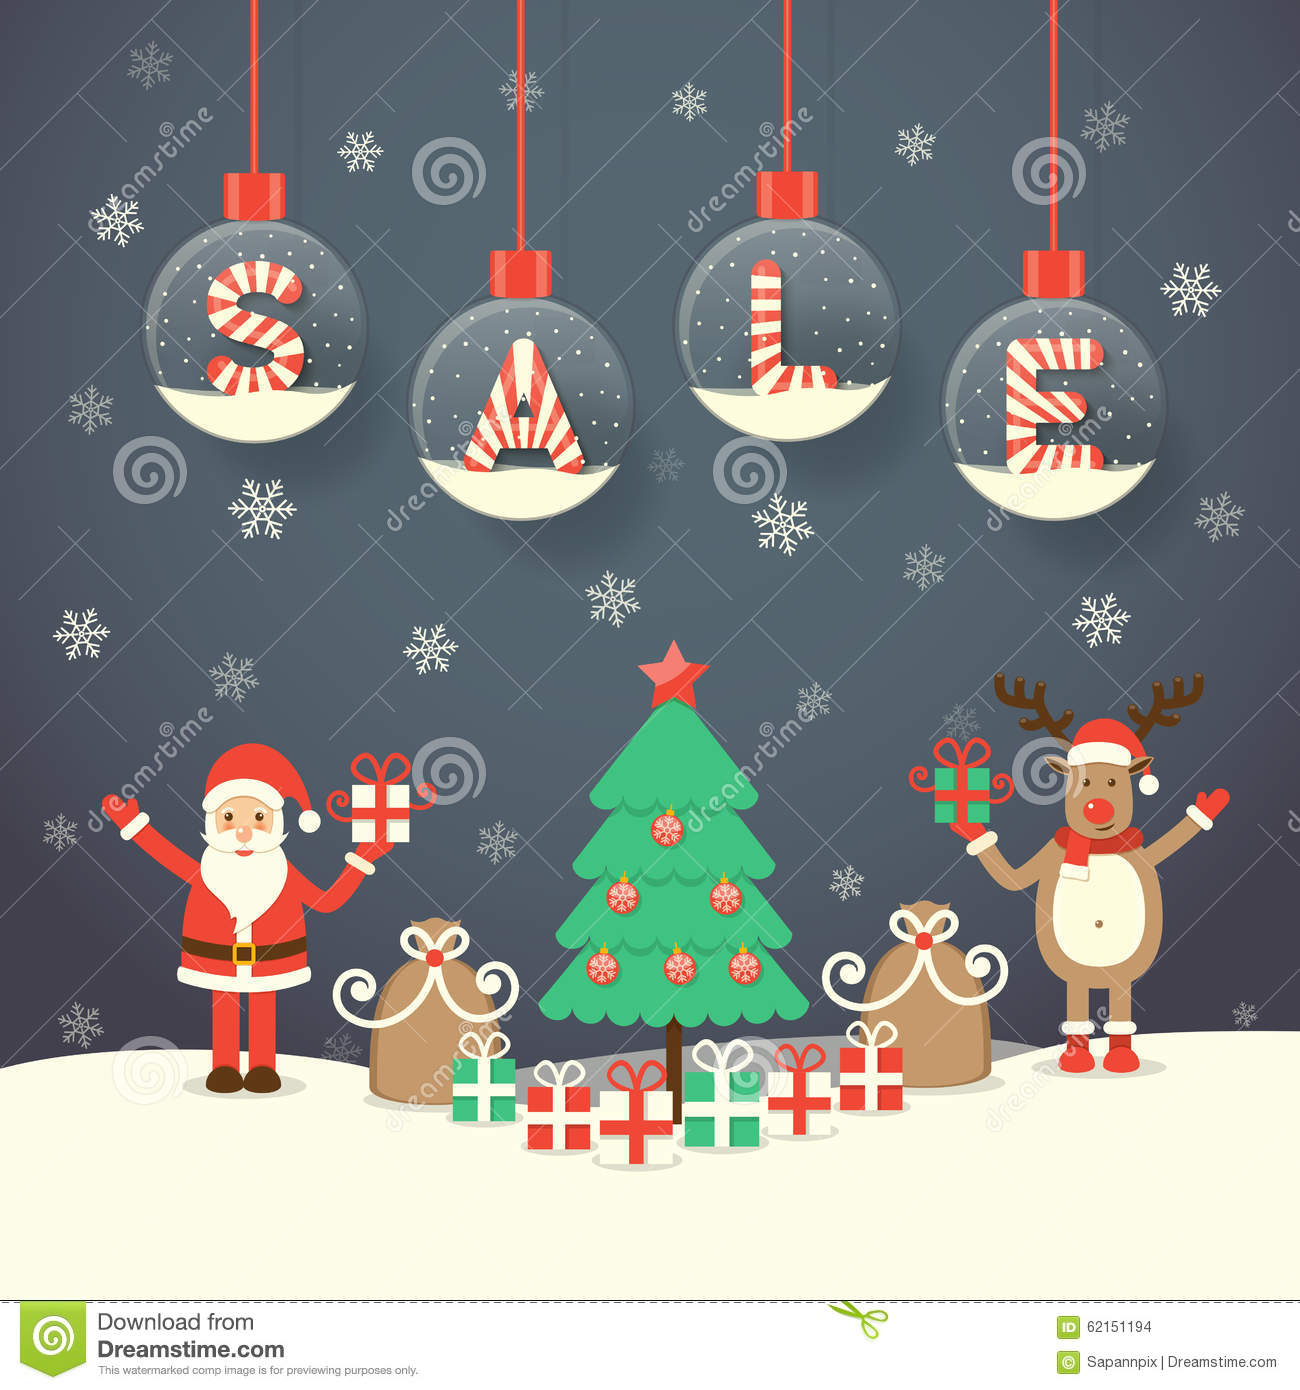 Christmas sale background stock vector. Illustration of candy - 62151194